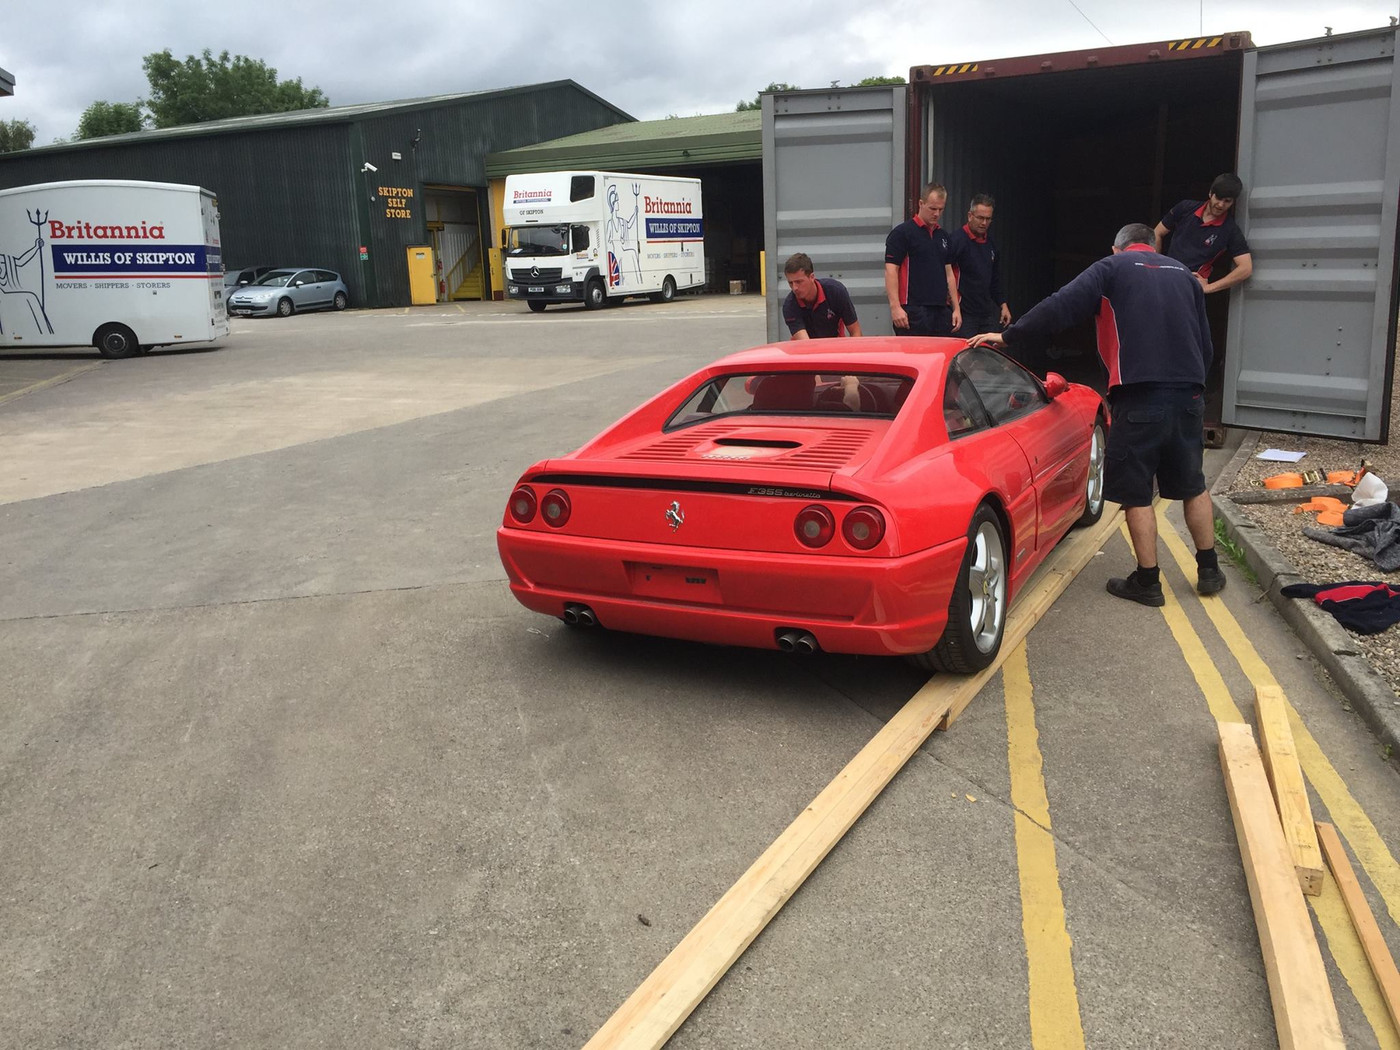 Ferrari into Shipping Container to UAE